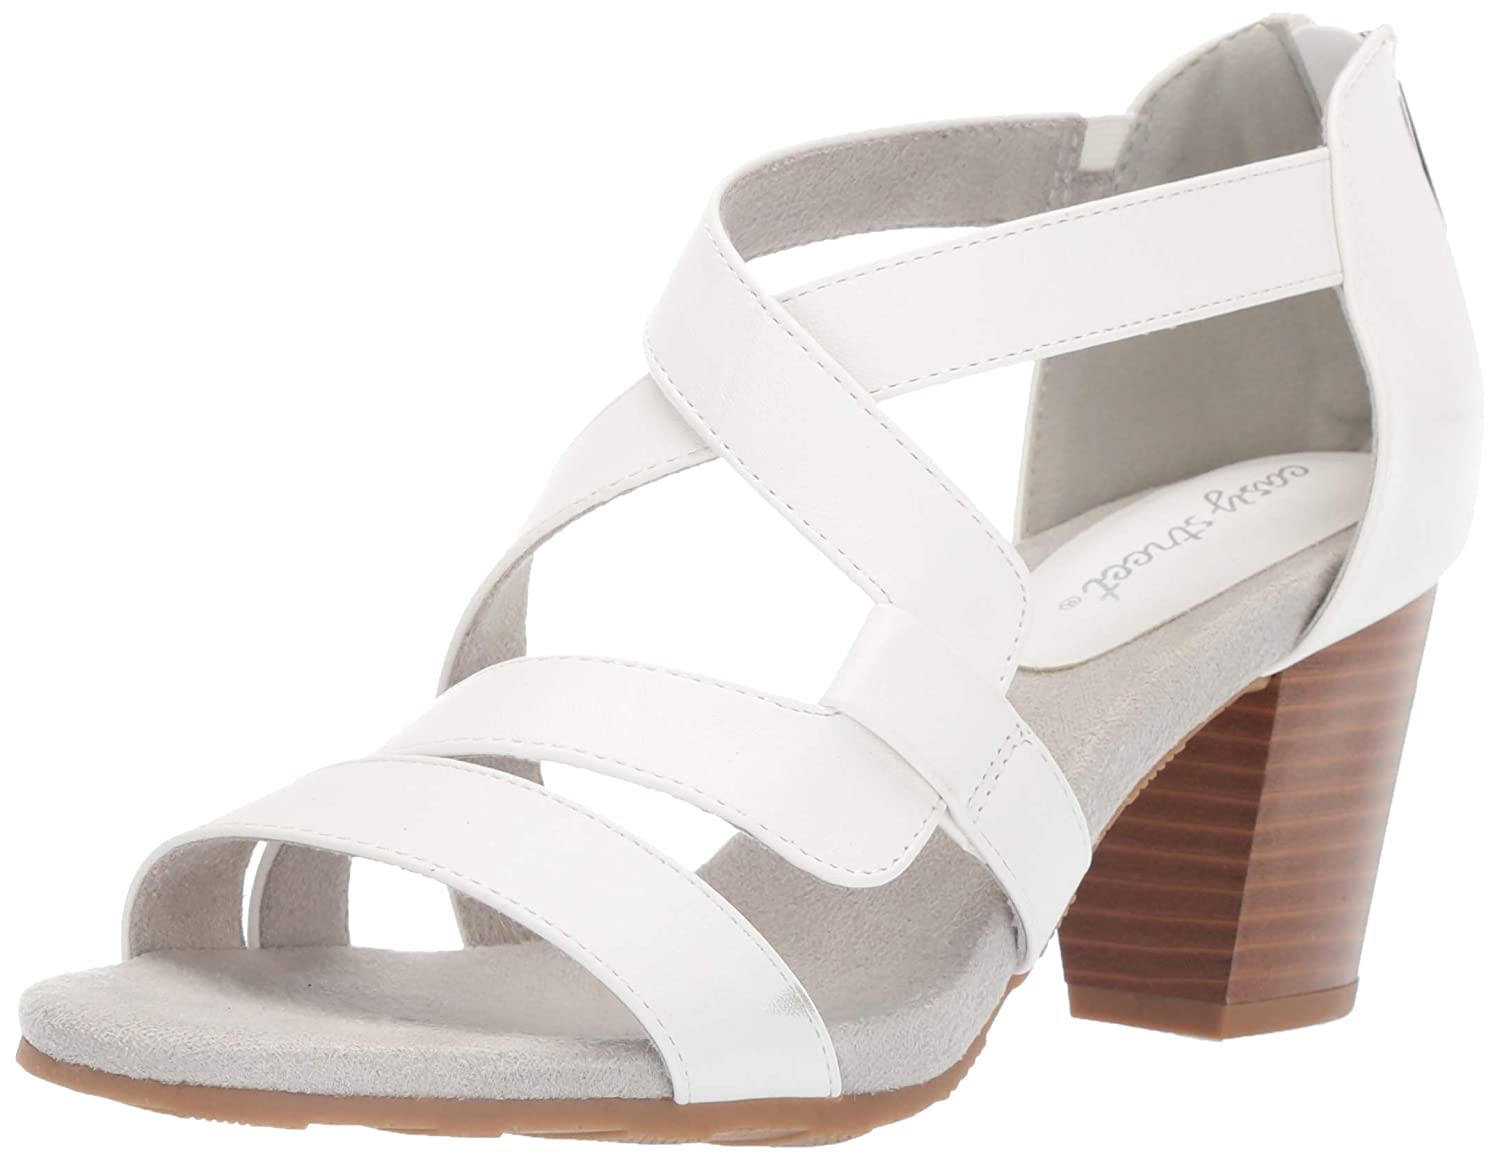 White Easy Street Womens Amuse Dress Casual Sandal with Back Zipper Heeled Sandal